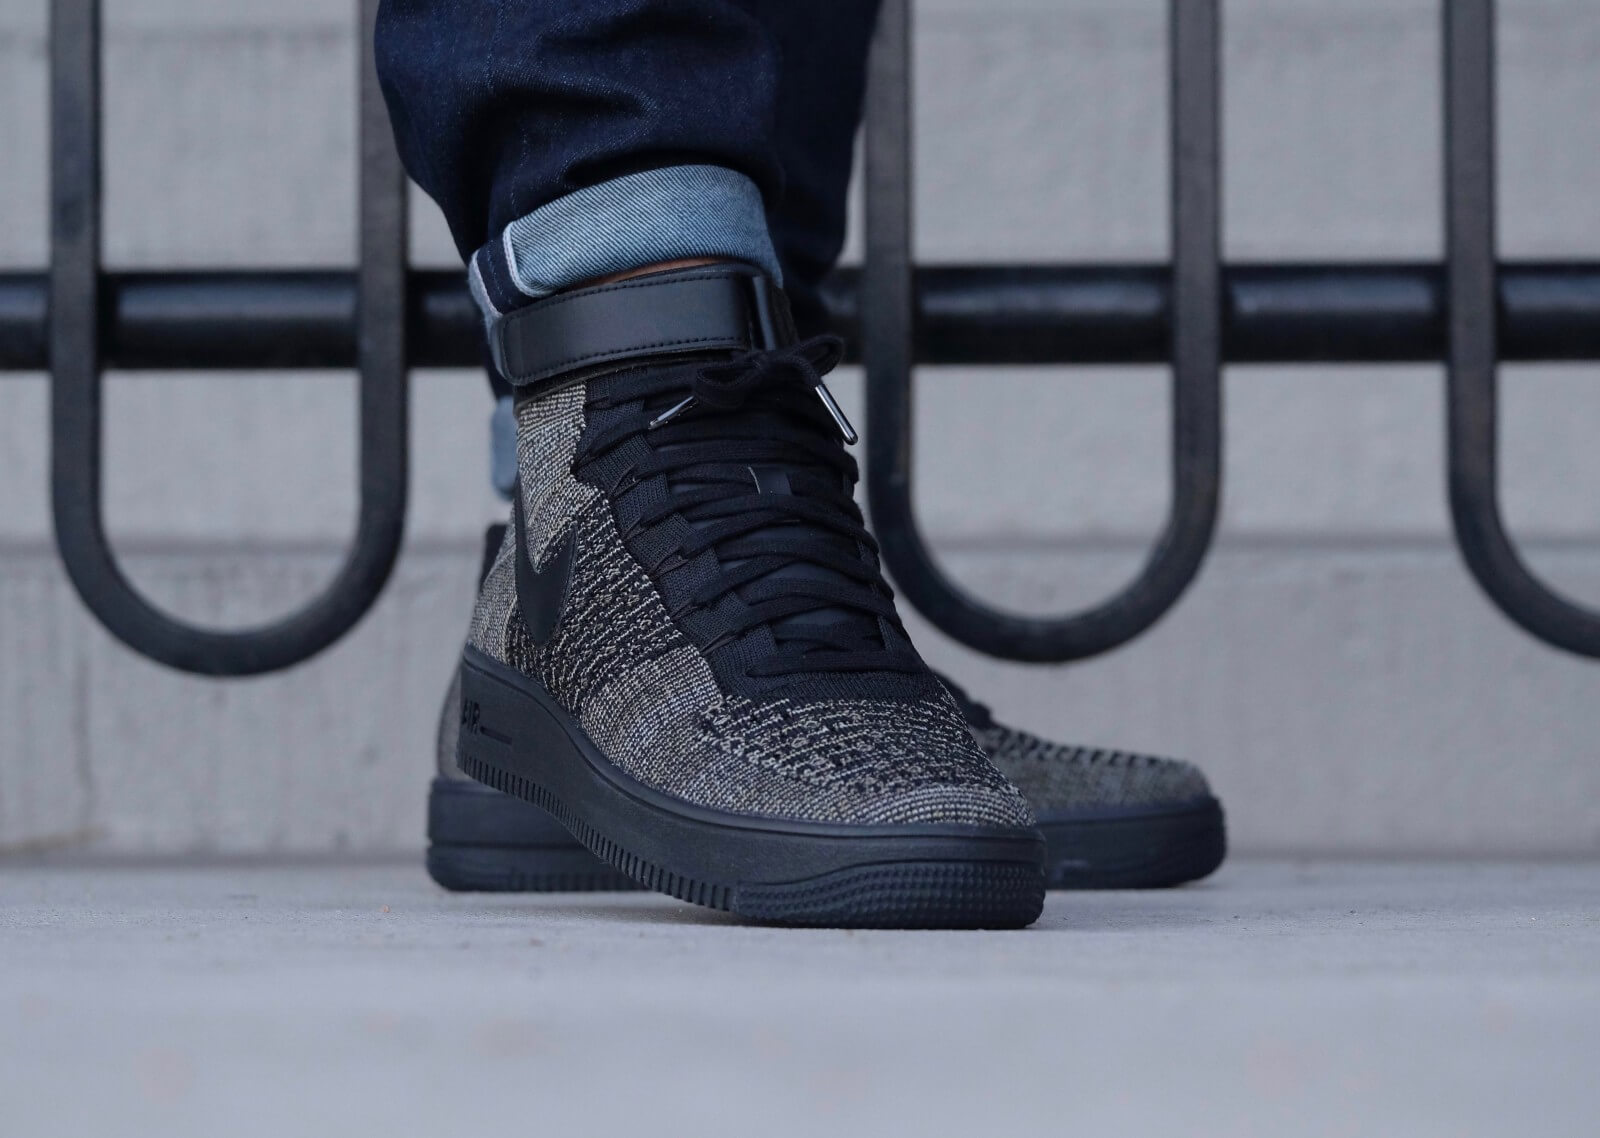 Nike Air Force 1 Ultra Flyknit Mid Palm Green/Black-White